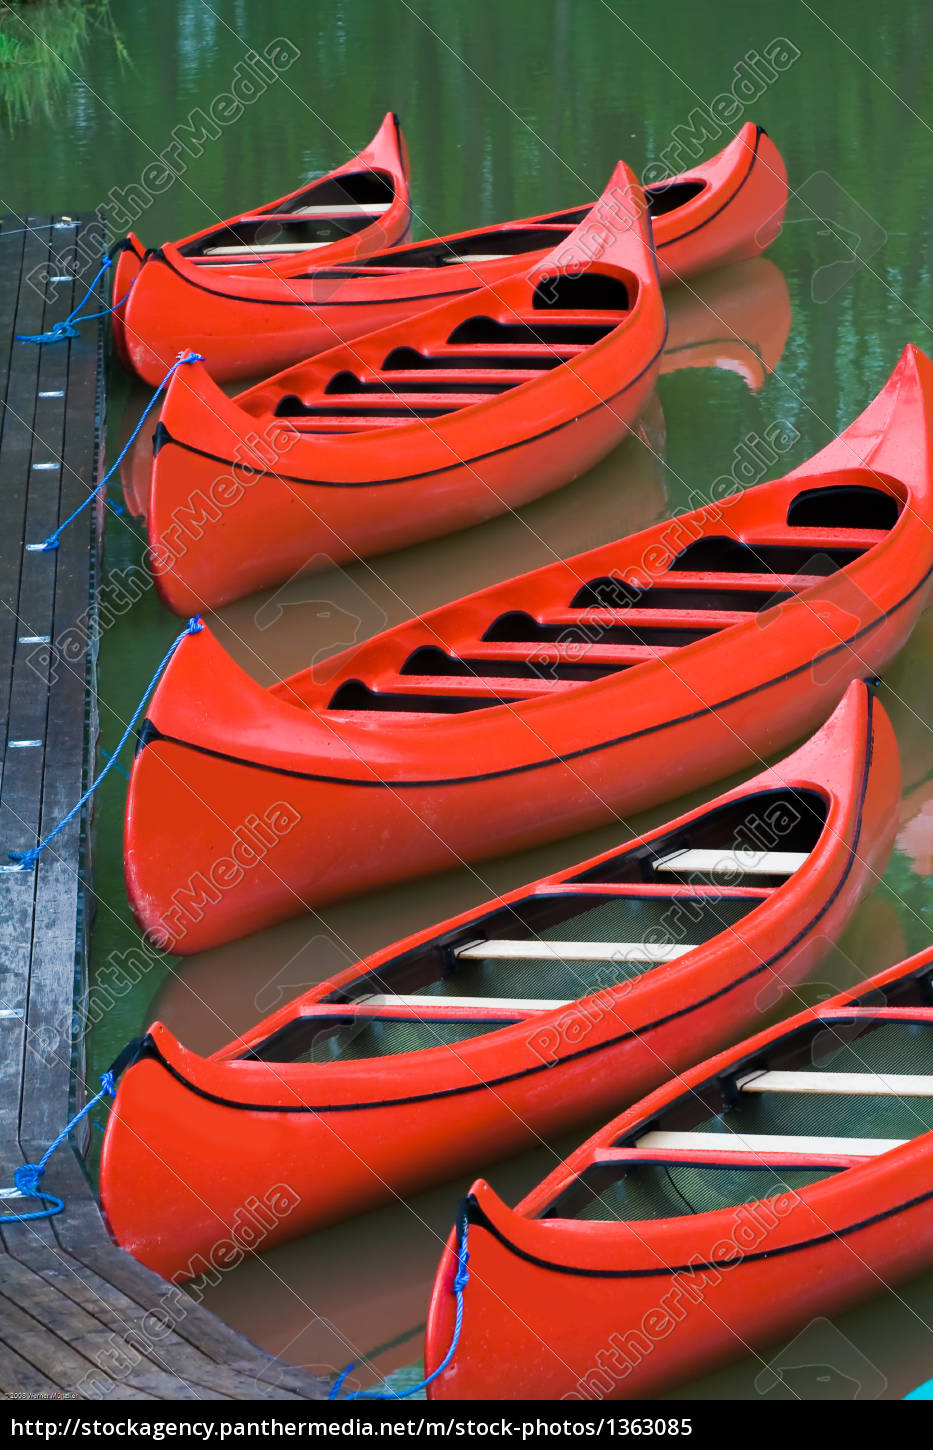 red, canoes - 1363085